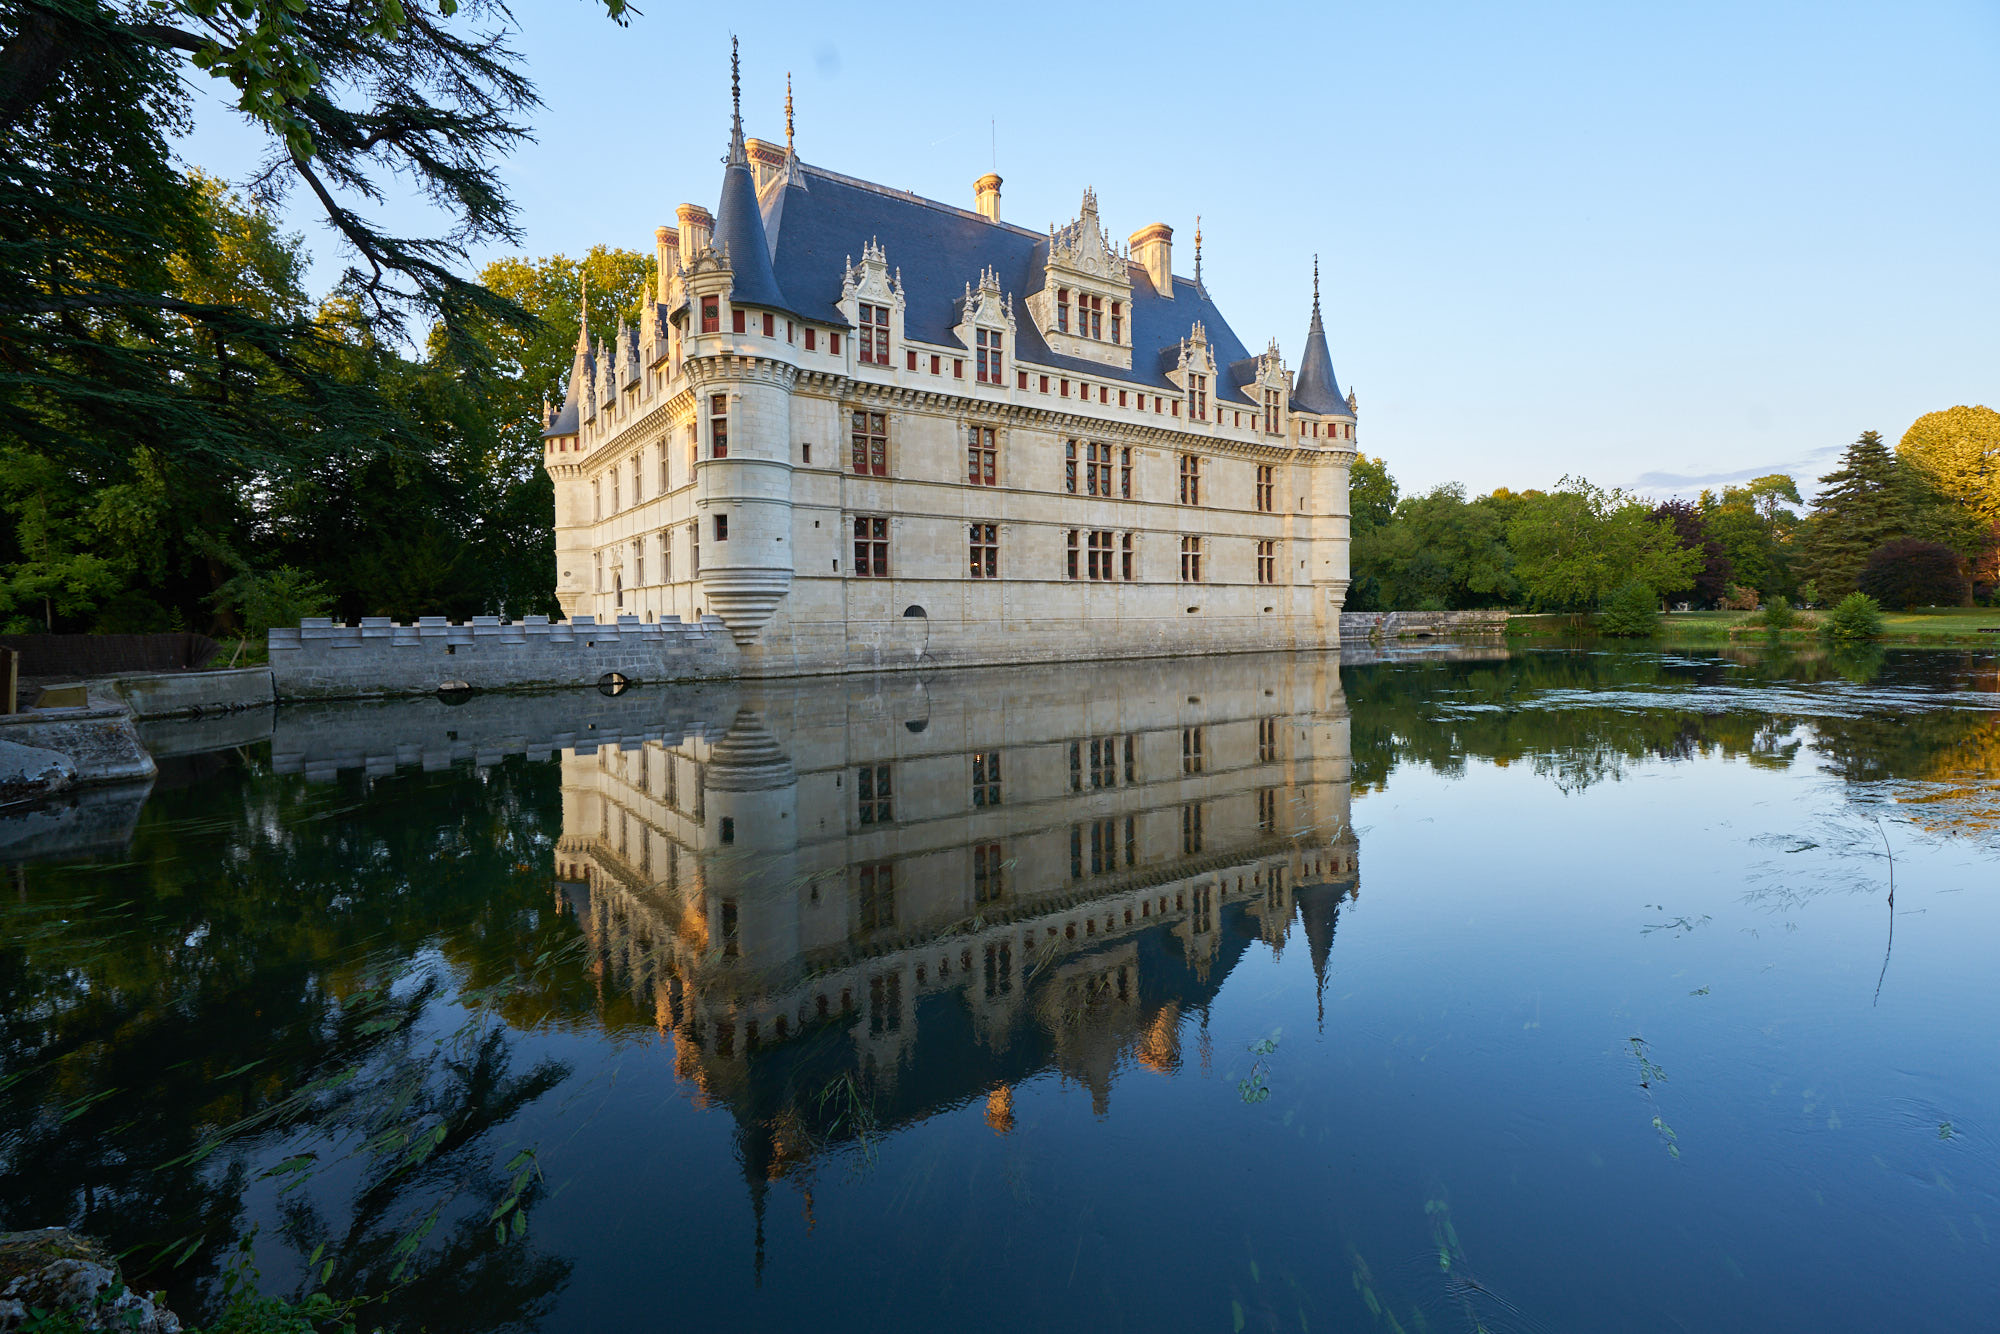 D'Azay-le-Rideau is one of the romantic chateau of the region